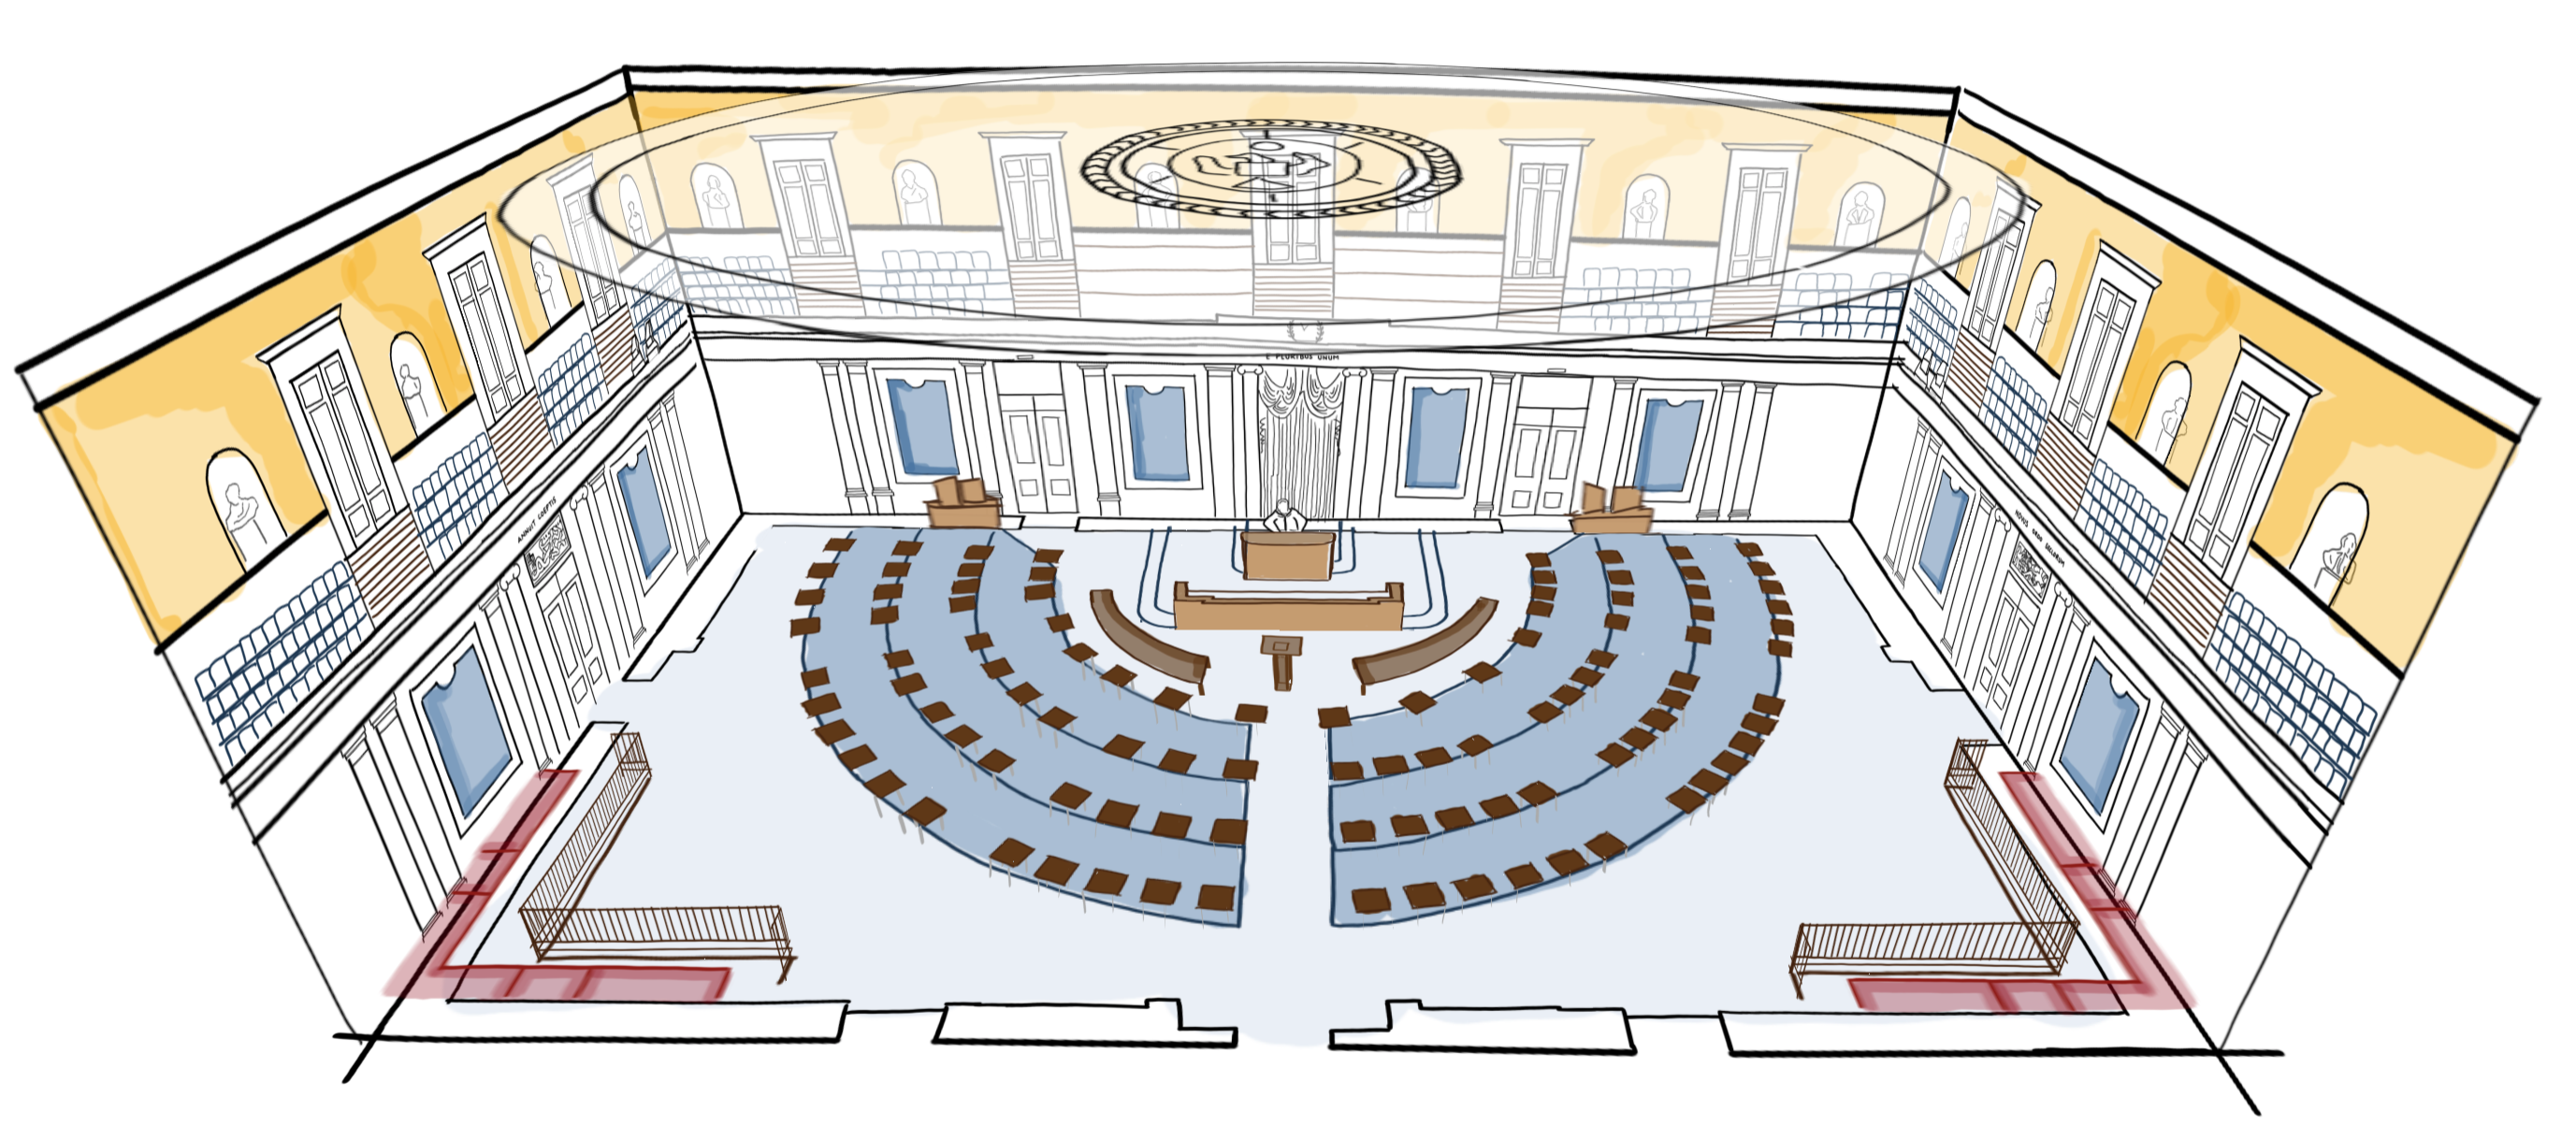 Illustration of the impeachment senate chamber by the New York Times